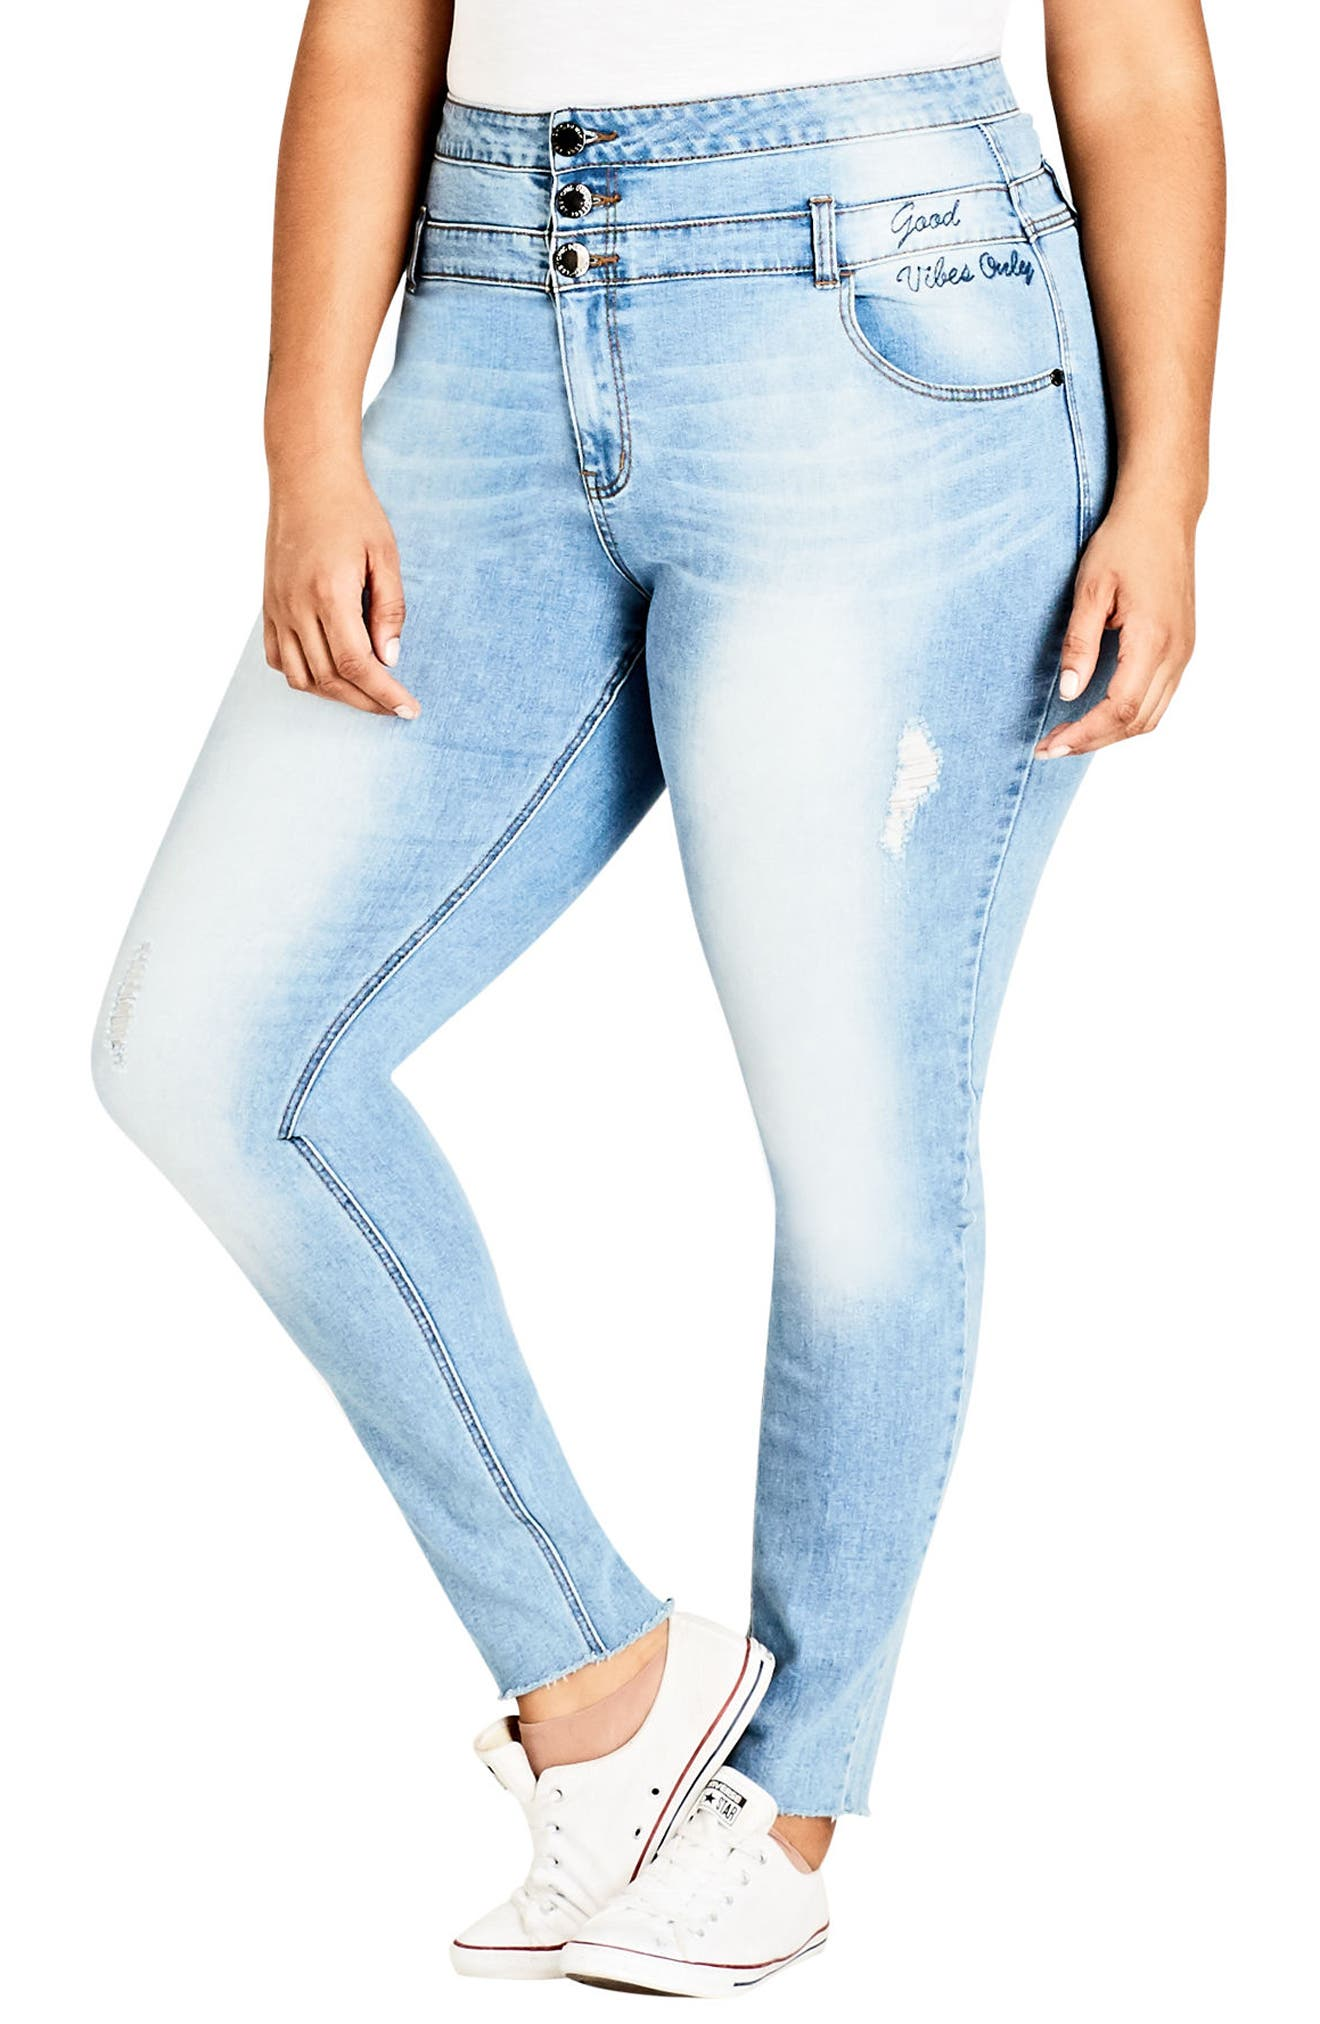 Harley Vibes Ripped Corset Skinny Jeans,                             Main thumbnail 1, color,                             410